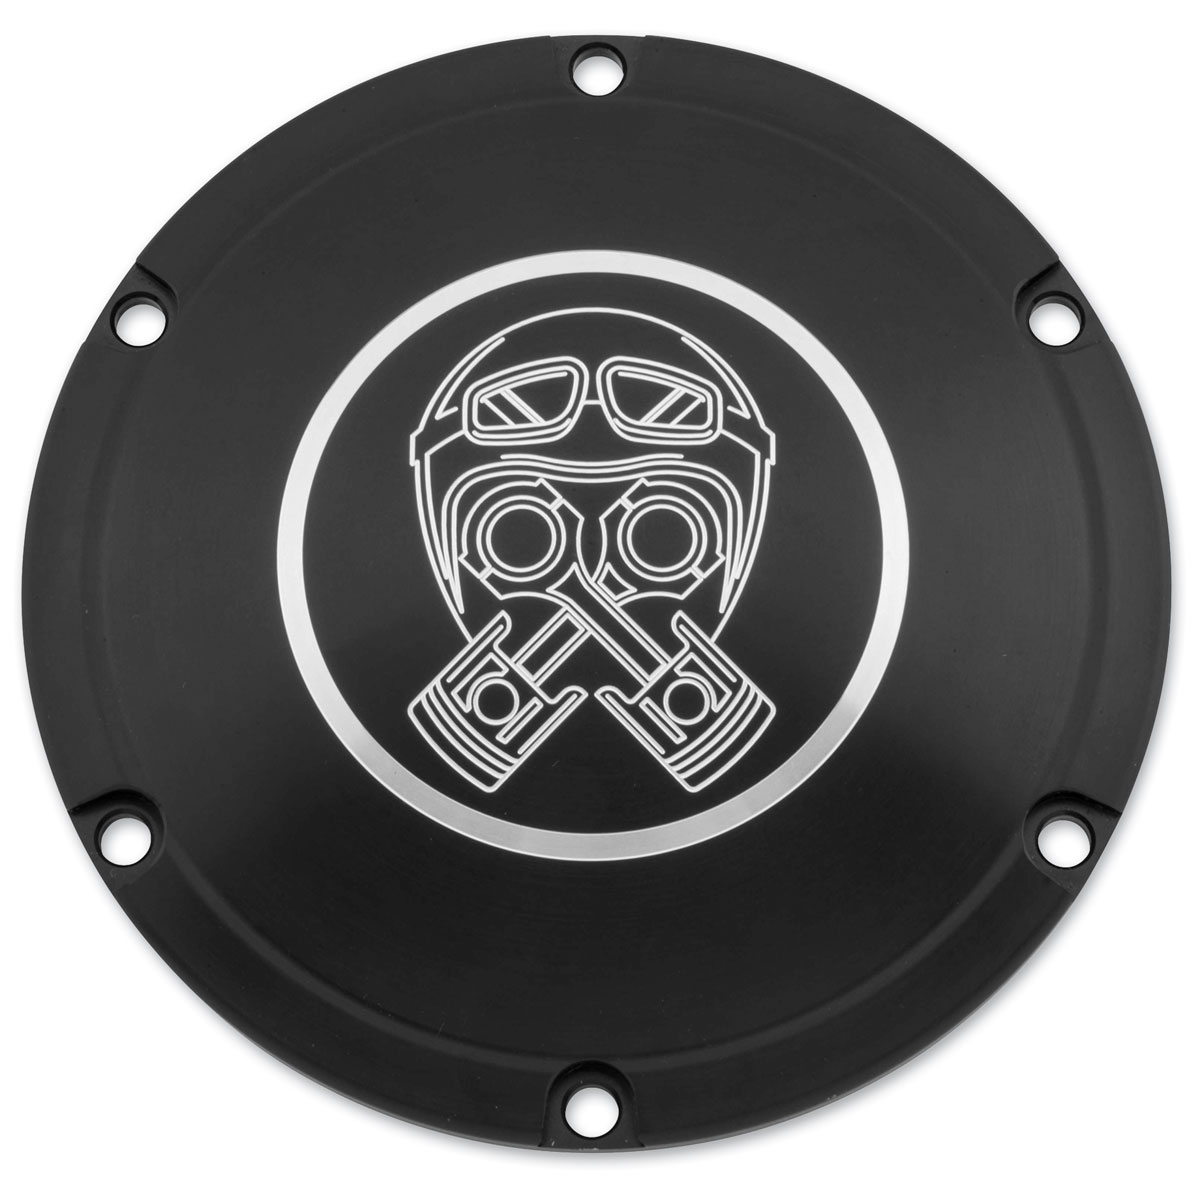 Brass Balls Cycles Piston Helmet Black Derby Cover